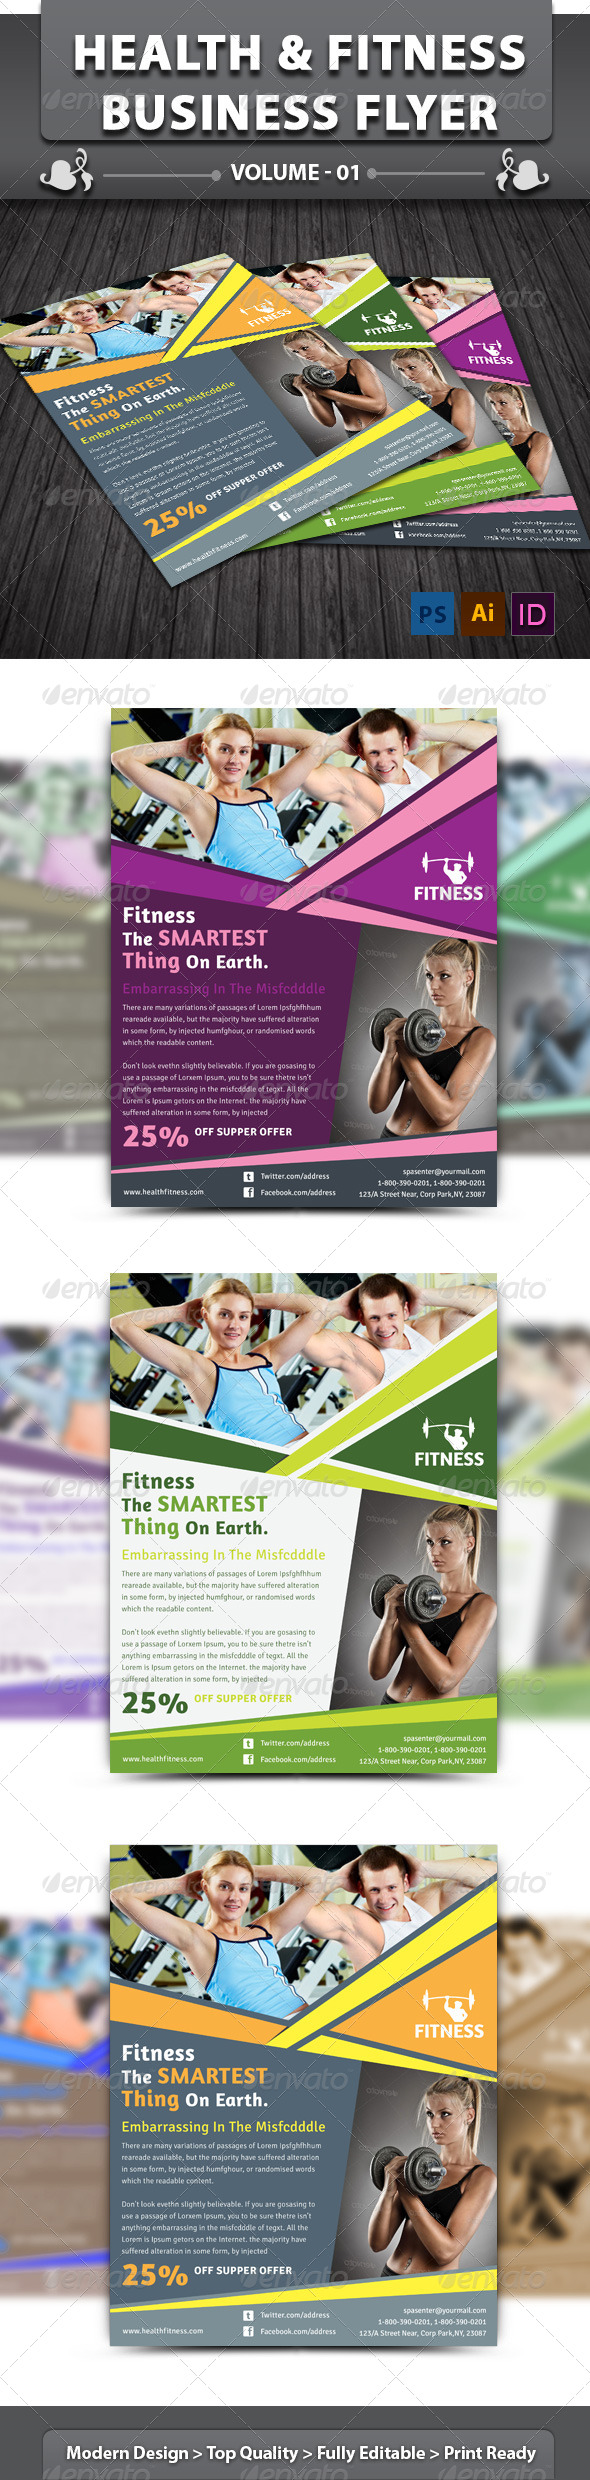 GraphicRiver Health & Fitness Business Flyer v1 6449569